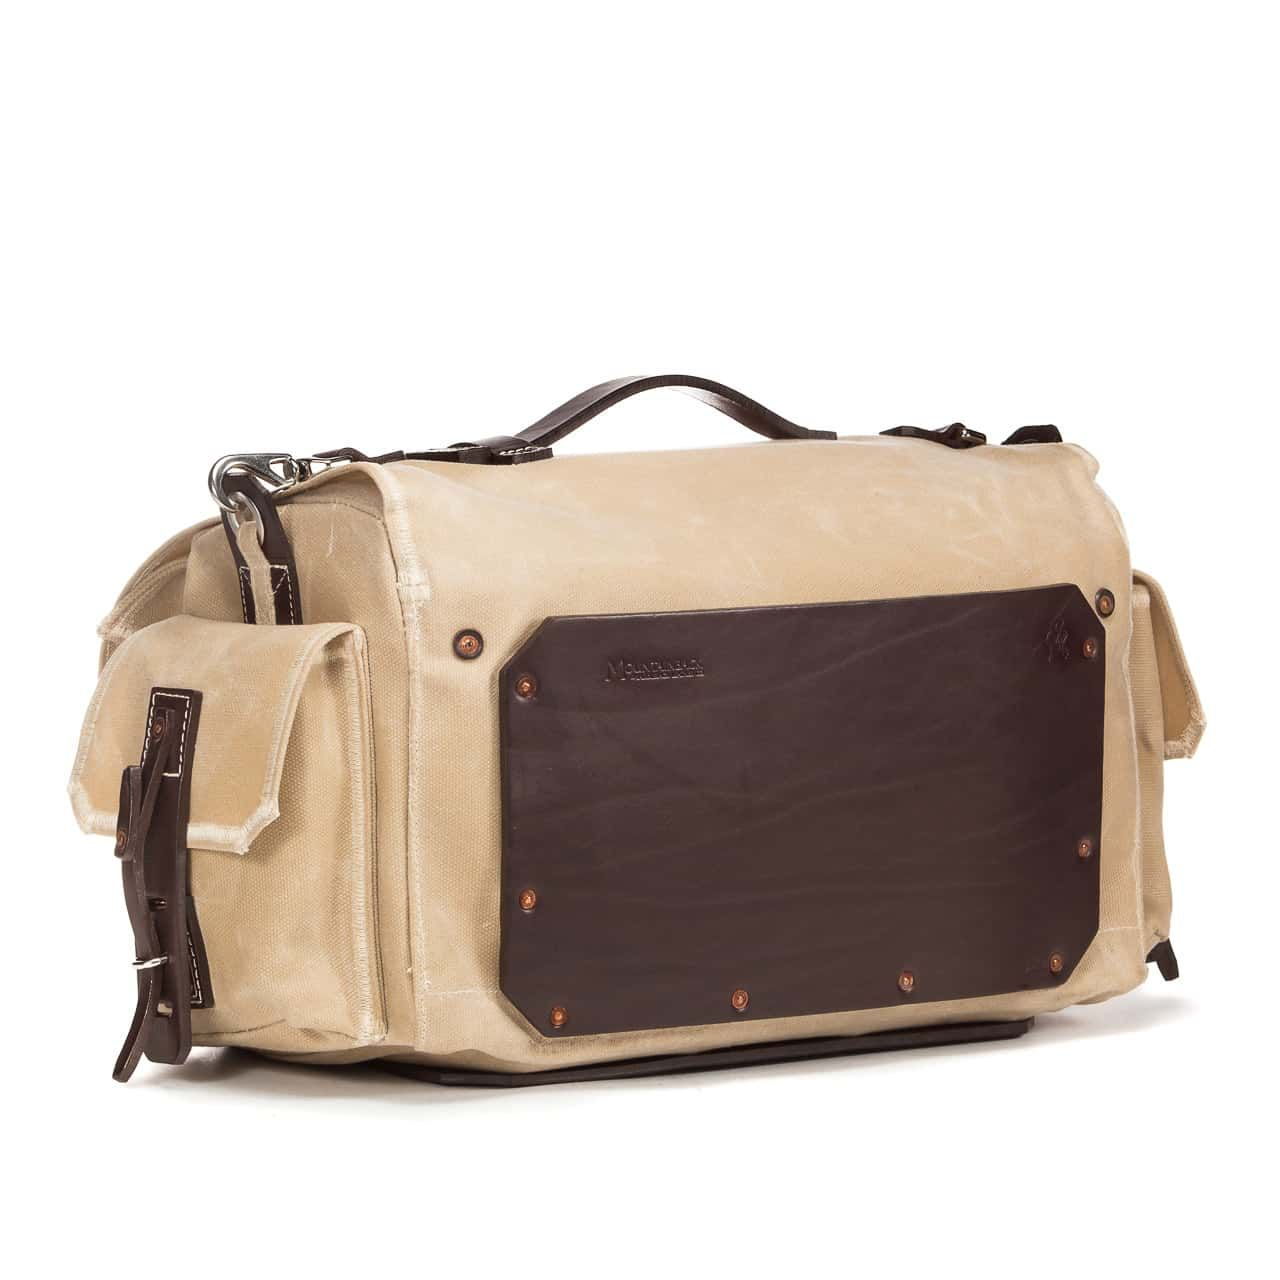 5 Pocket Duffel in Color Sand Back Angle